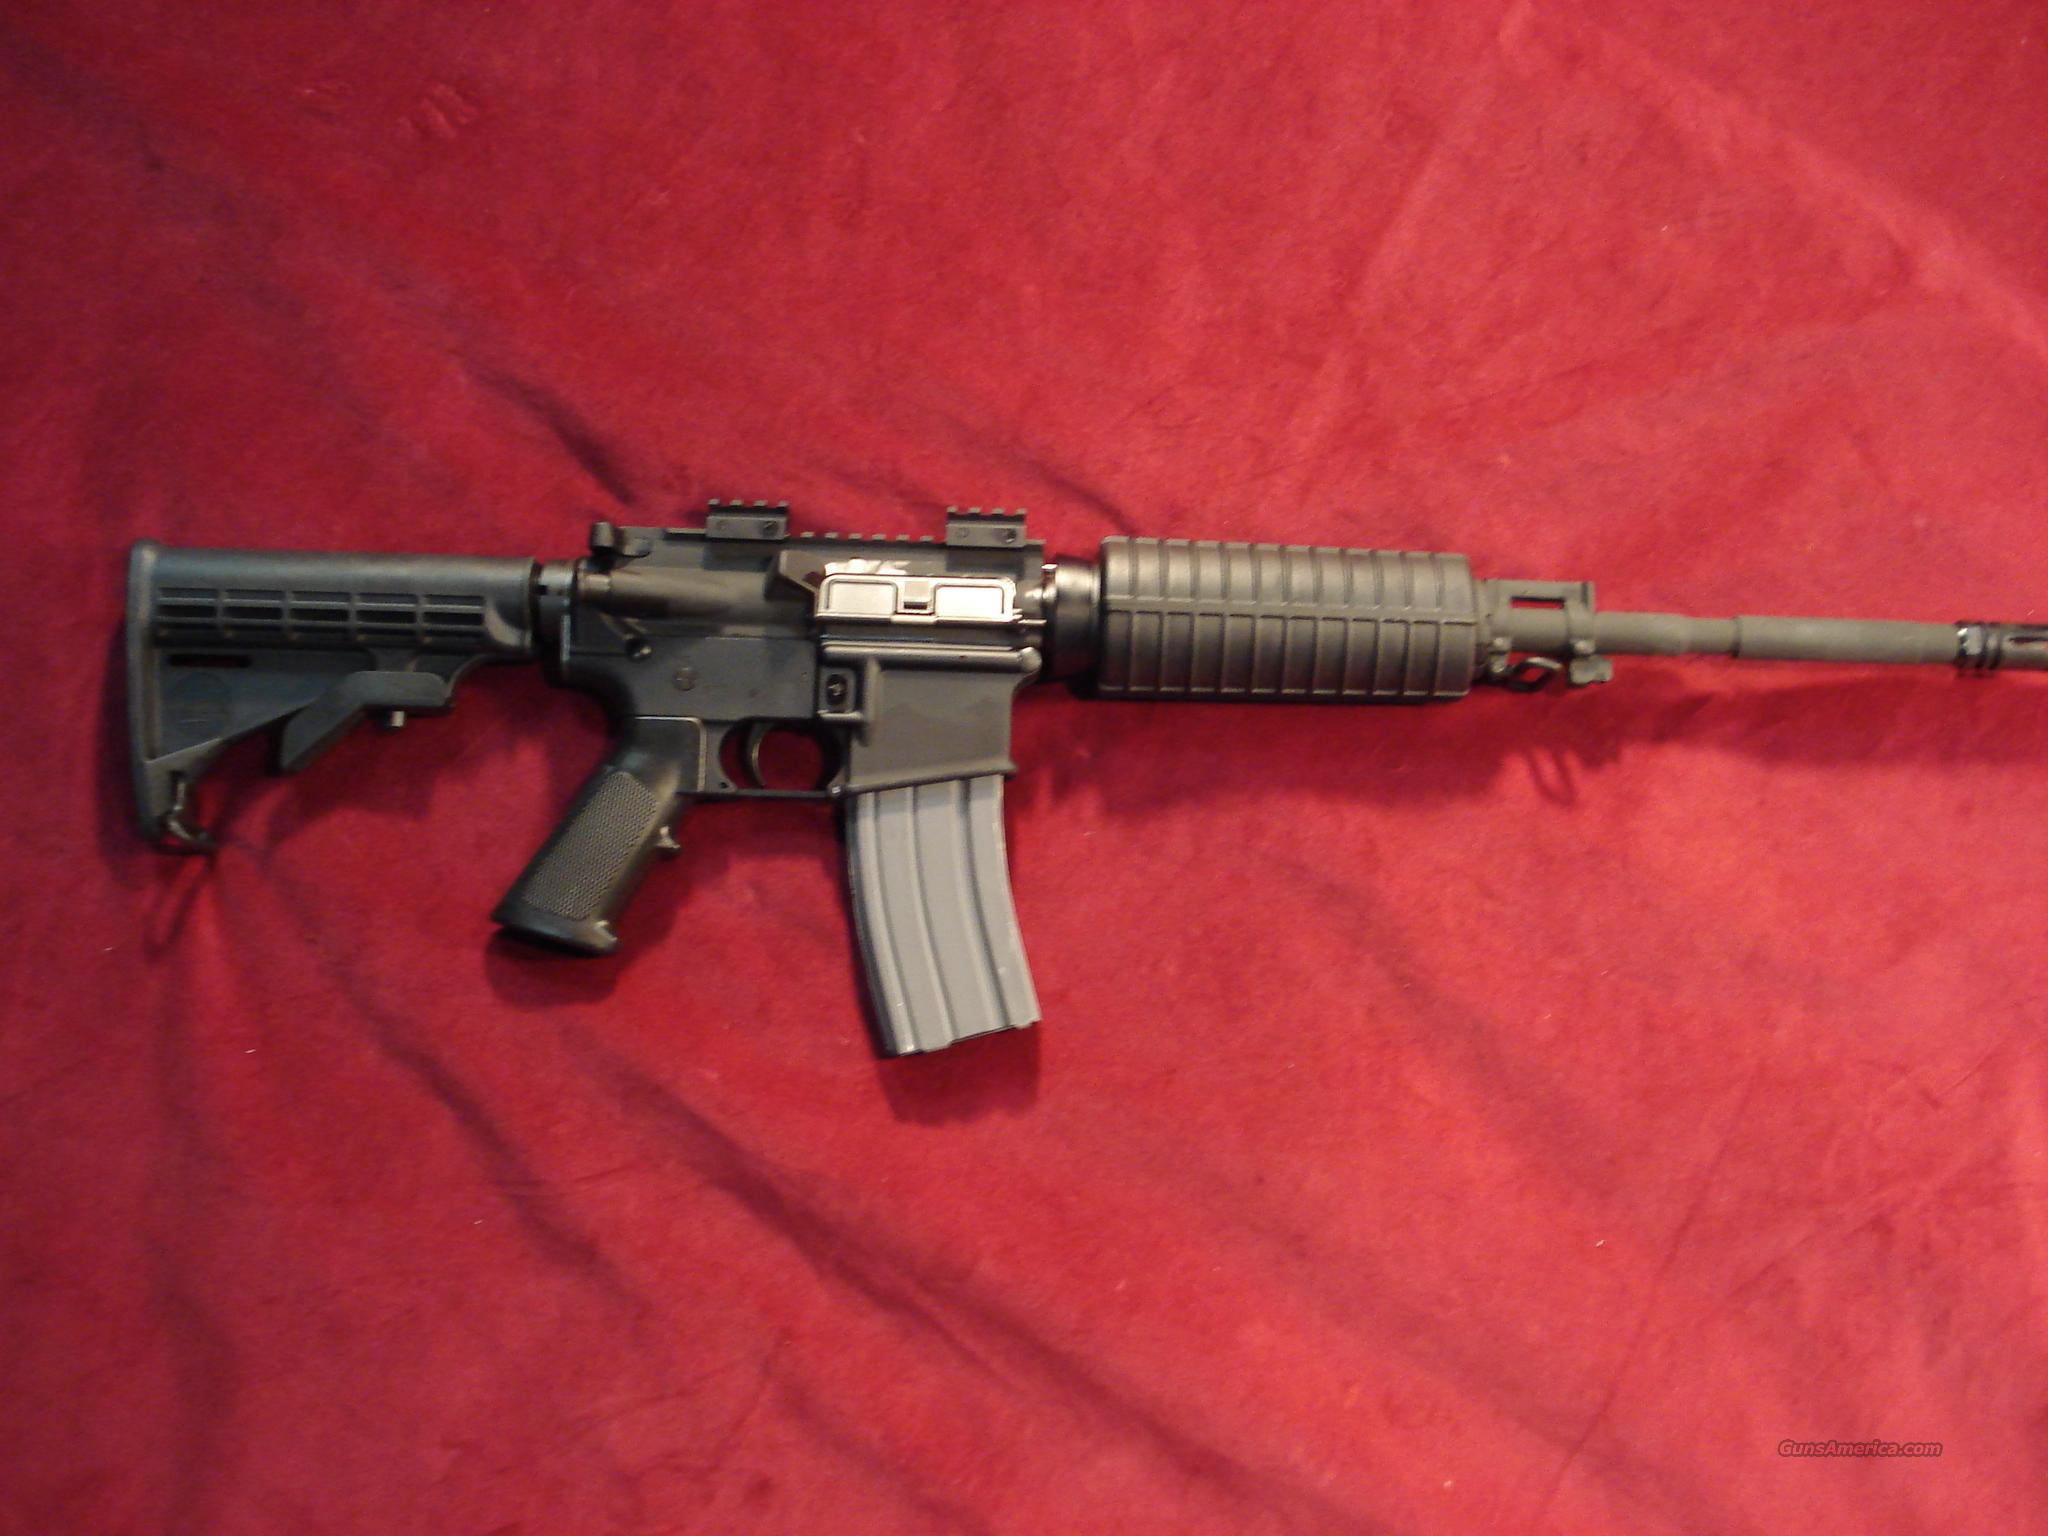 BUSHMASTER M4 O.R.C. ( OPTIC READY CARBINE) NEW IN THE BOX  Guns > Rifles > Bushmaster Rifles > Complete Rifles